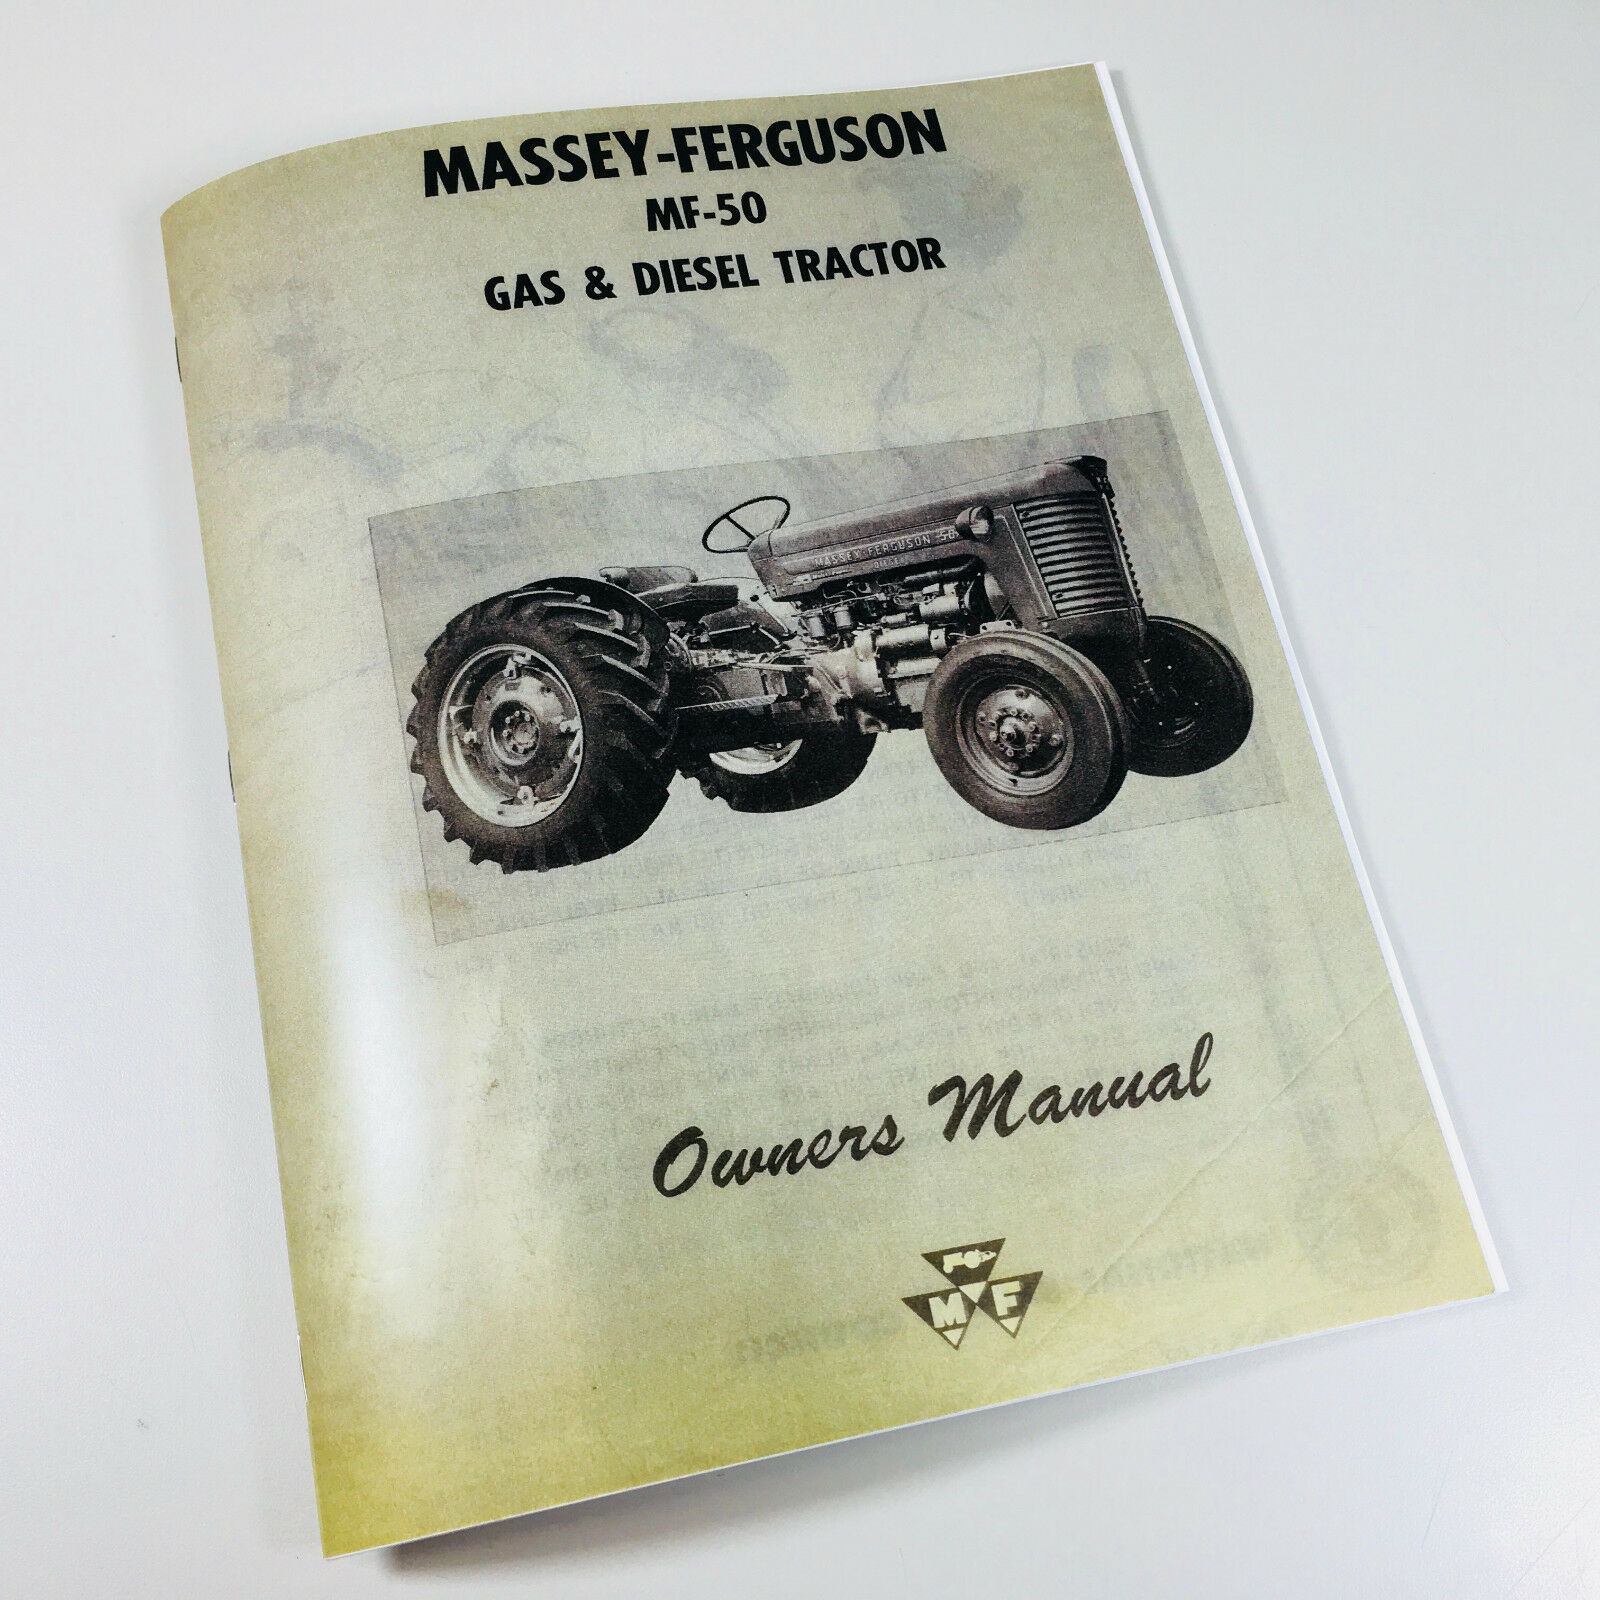 New reprint manual ~ 51 pages